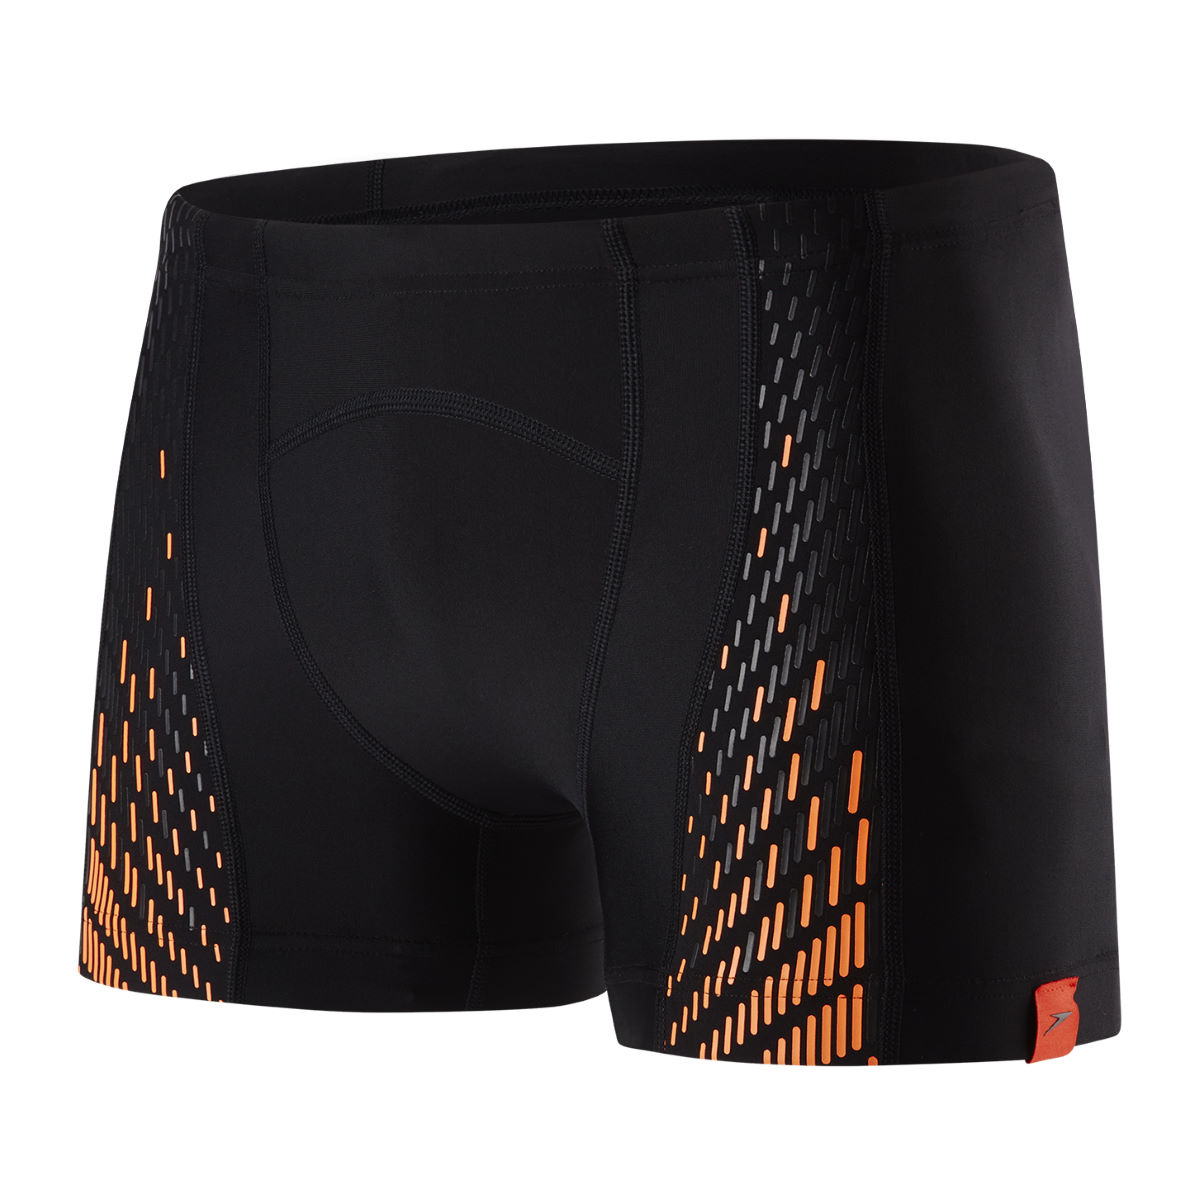 Boxer de bain Speedo Fit PowerMesh Pro - 32 Black/Fluo Orange